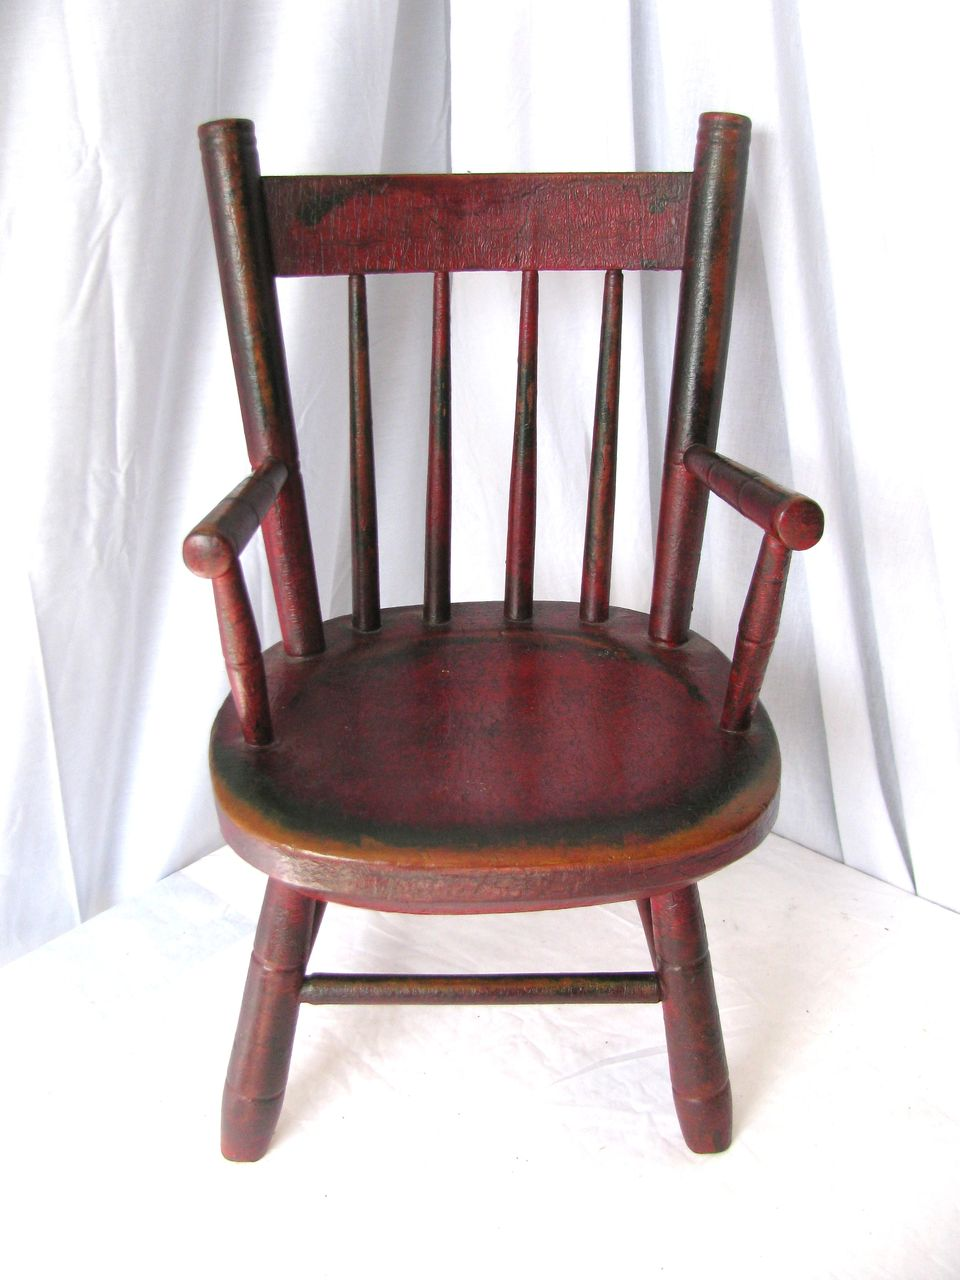 Antique Folk Painted Child's Windsor Chair : Finish Line Collectibles |  Ruby Lane - Antique Folk Painted Child's Windsor Chair : Finish Line